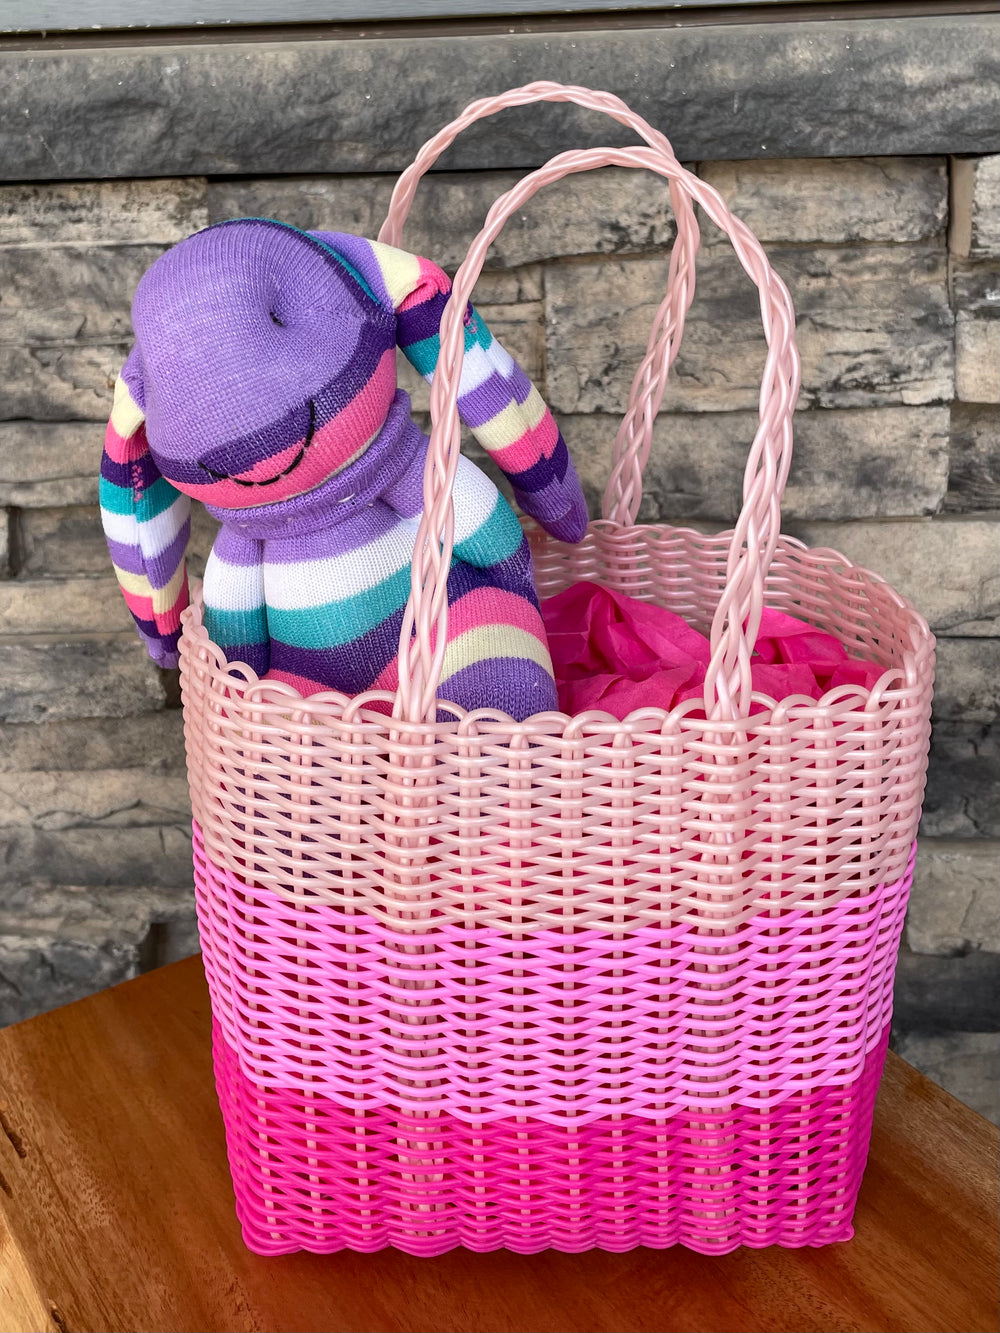 Little Girl Basket Tote by Sueno Canastas from Guatemala